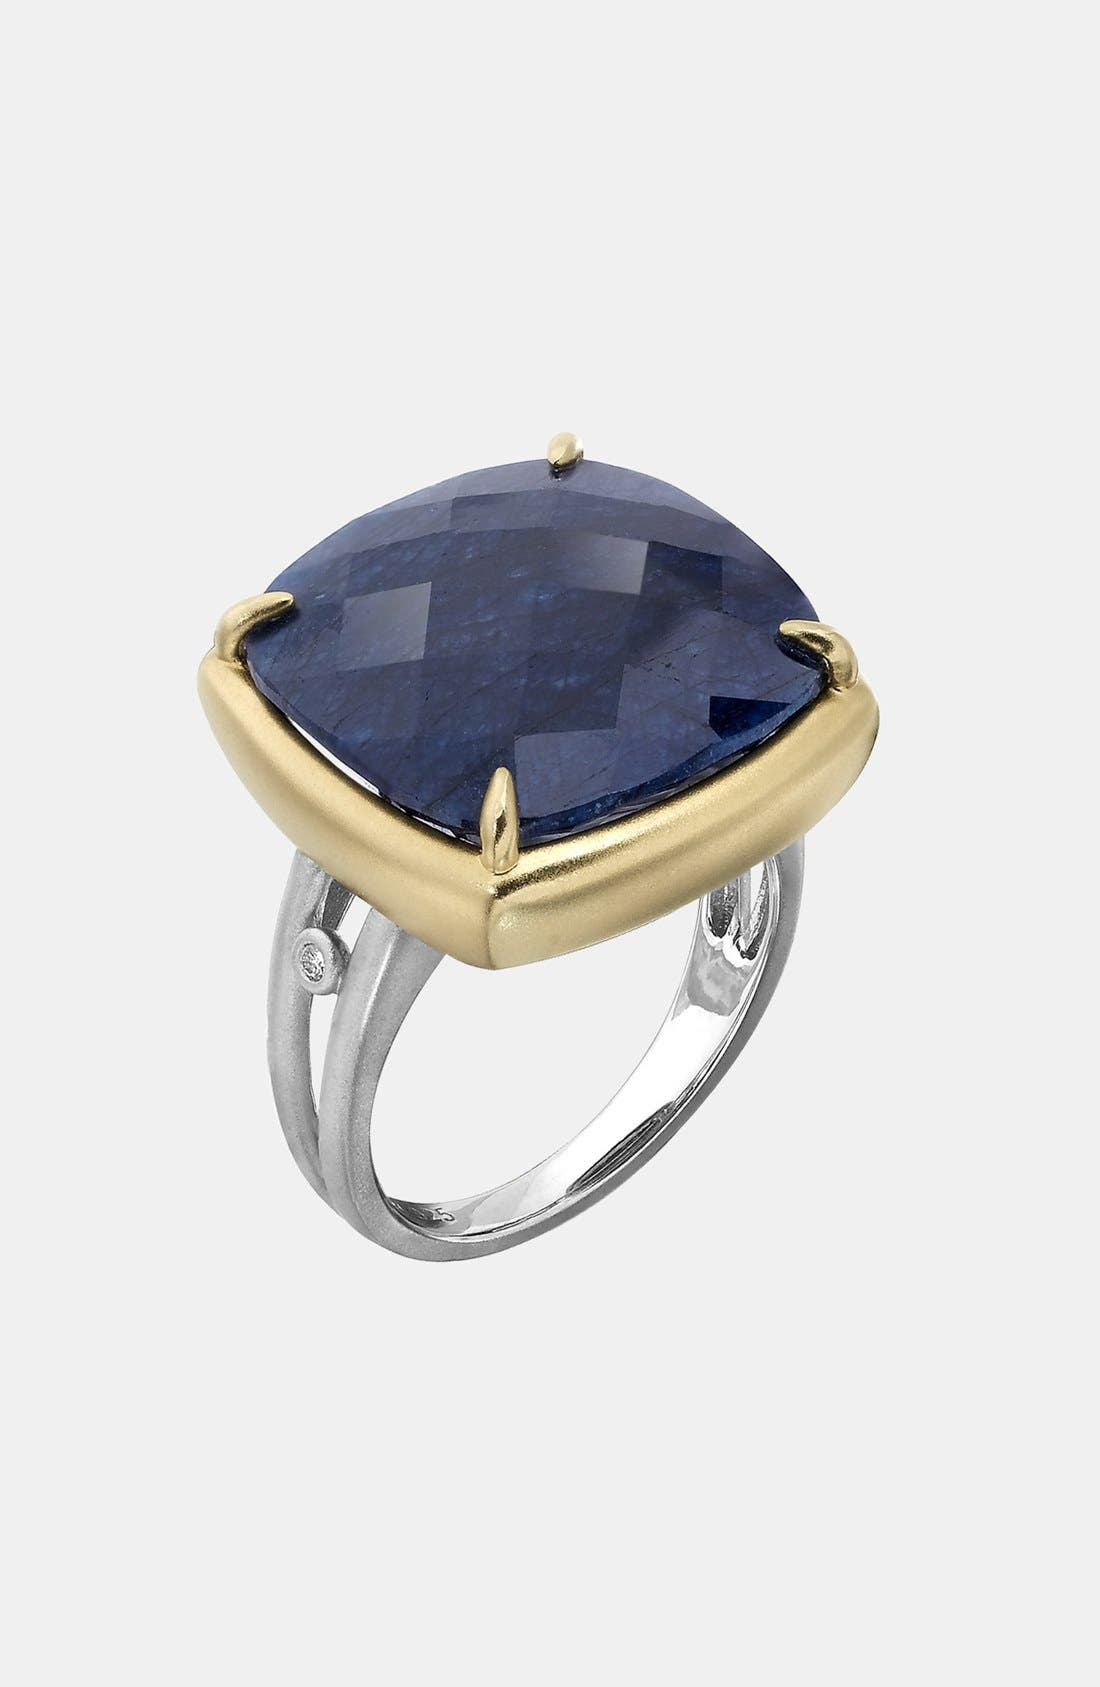 Main Image - Whitney Stern Sapphire Ring